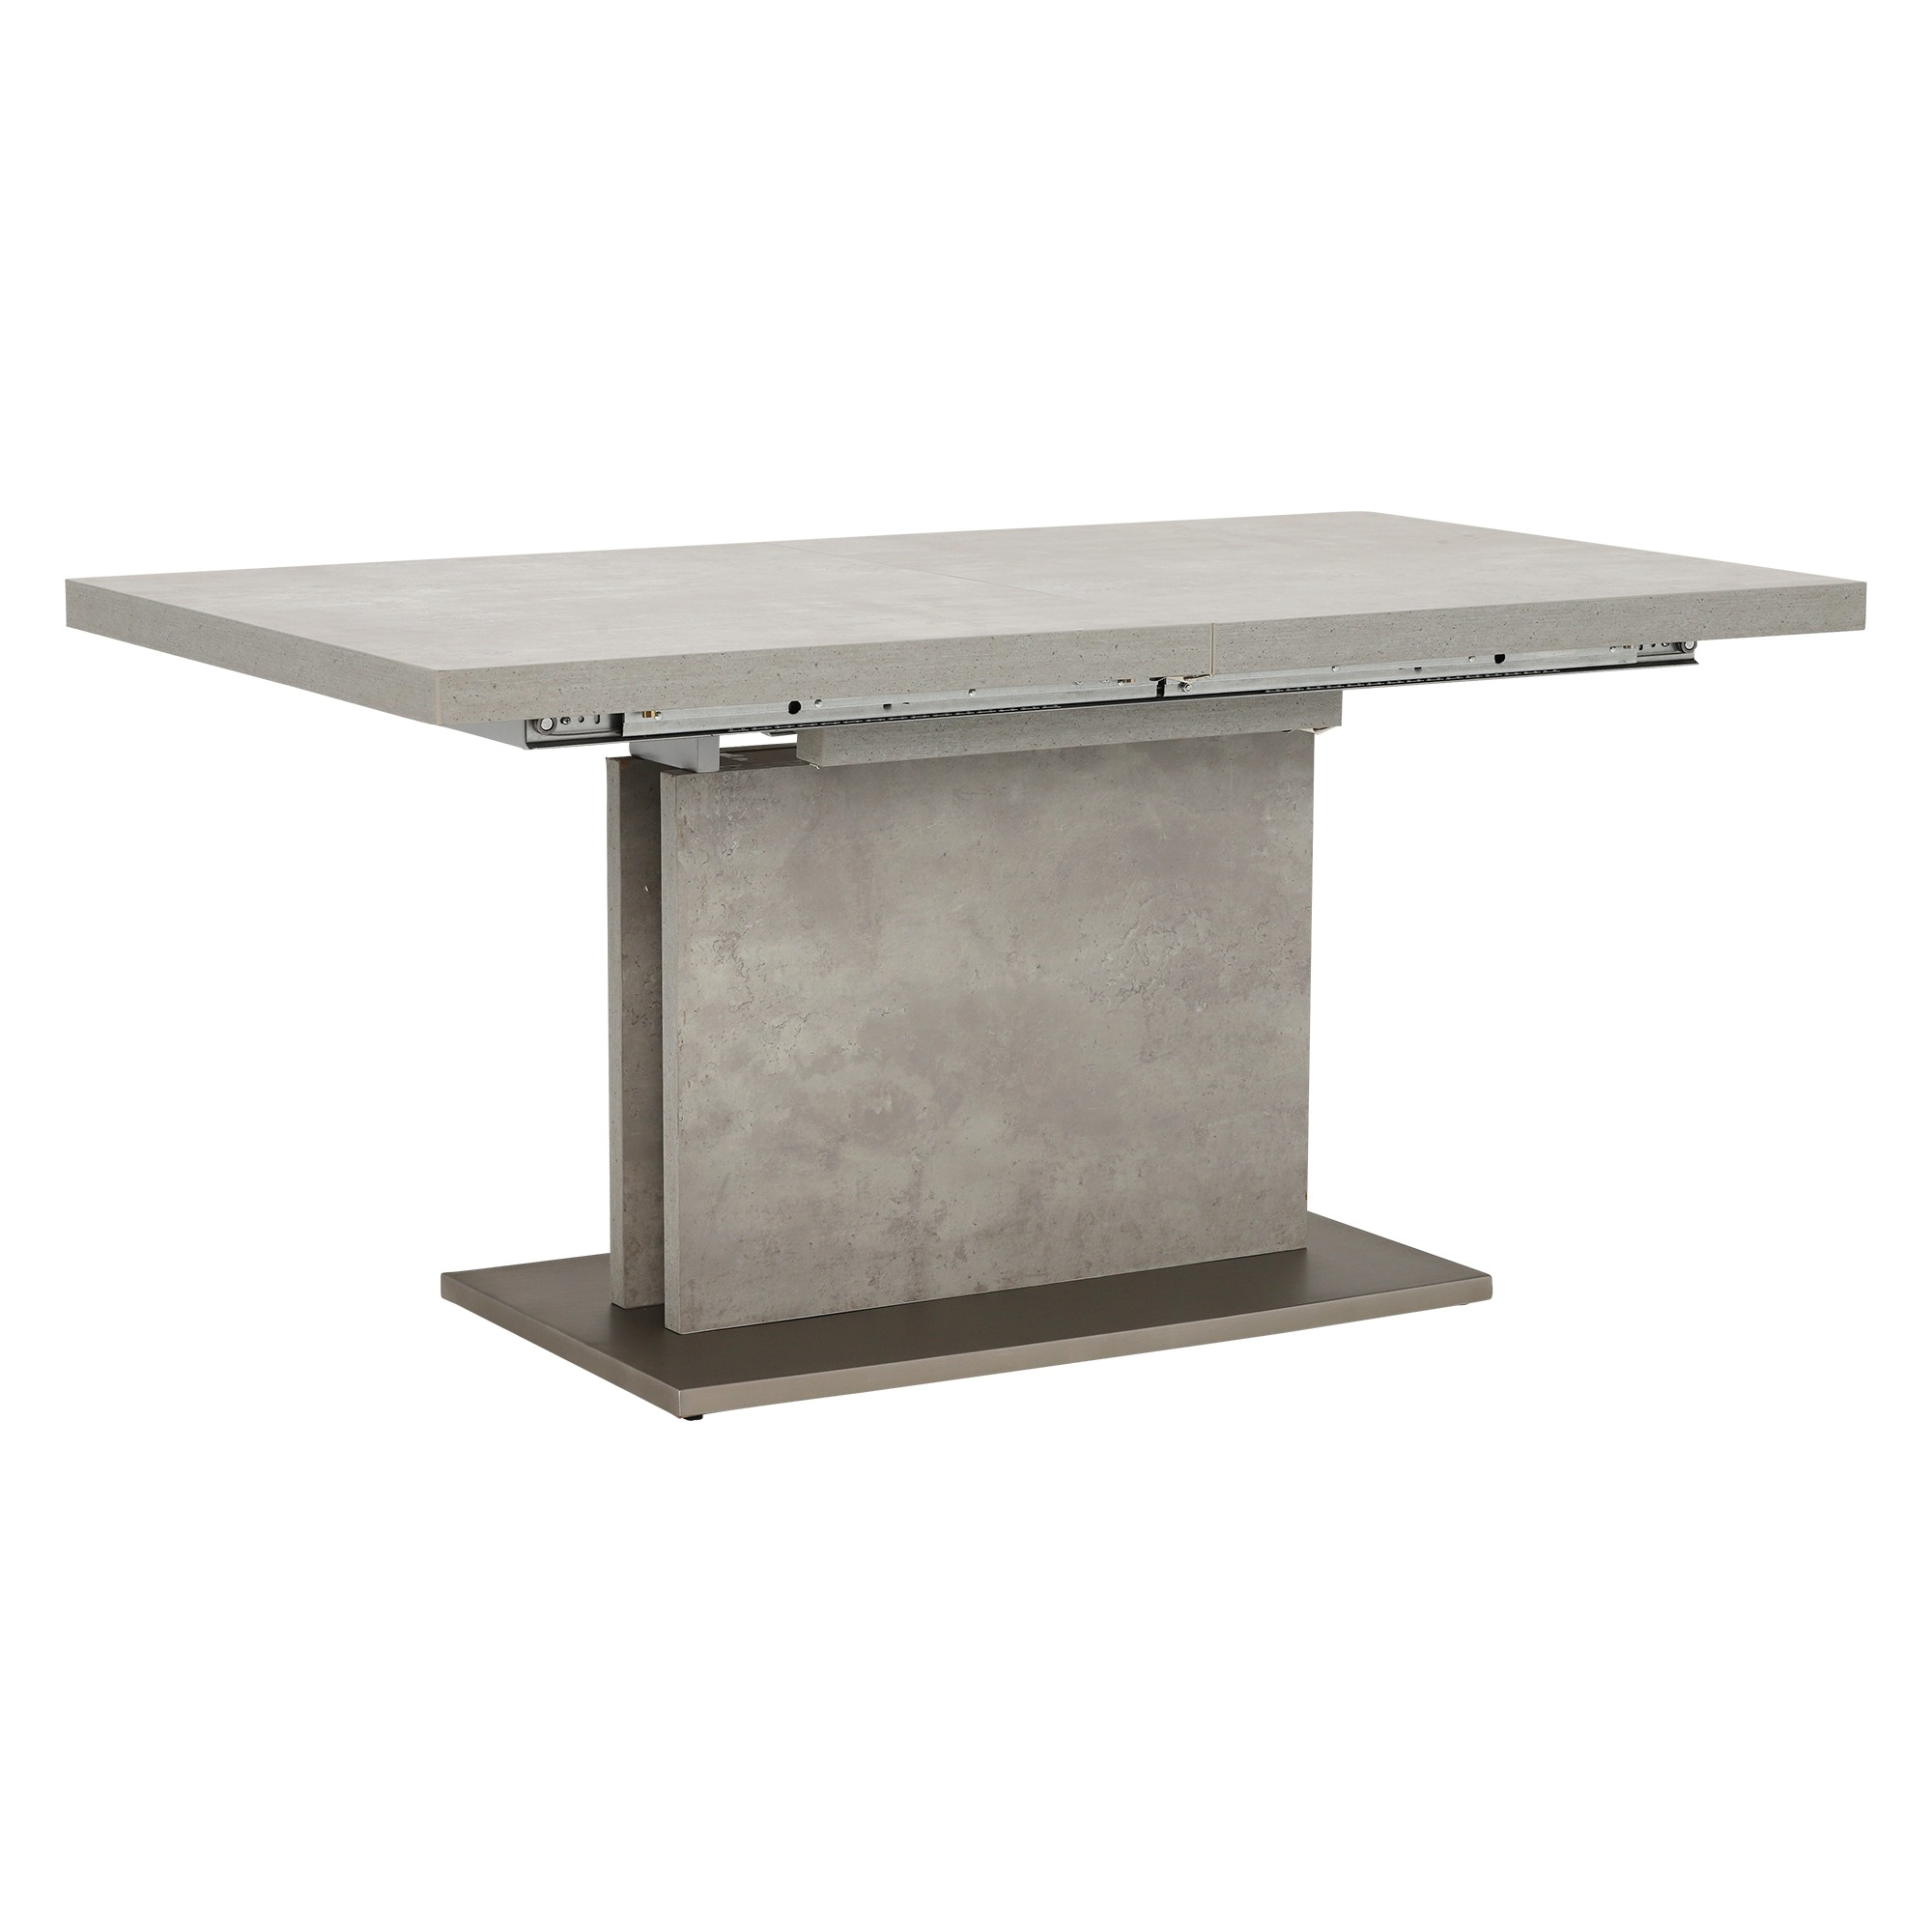 CONCRETE LOOK EXTENDING TABLE - ANGLE DETAIL